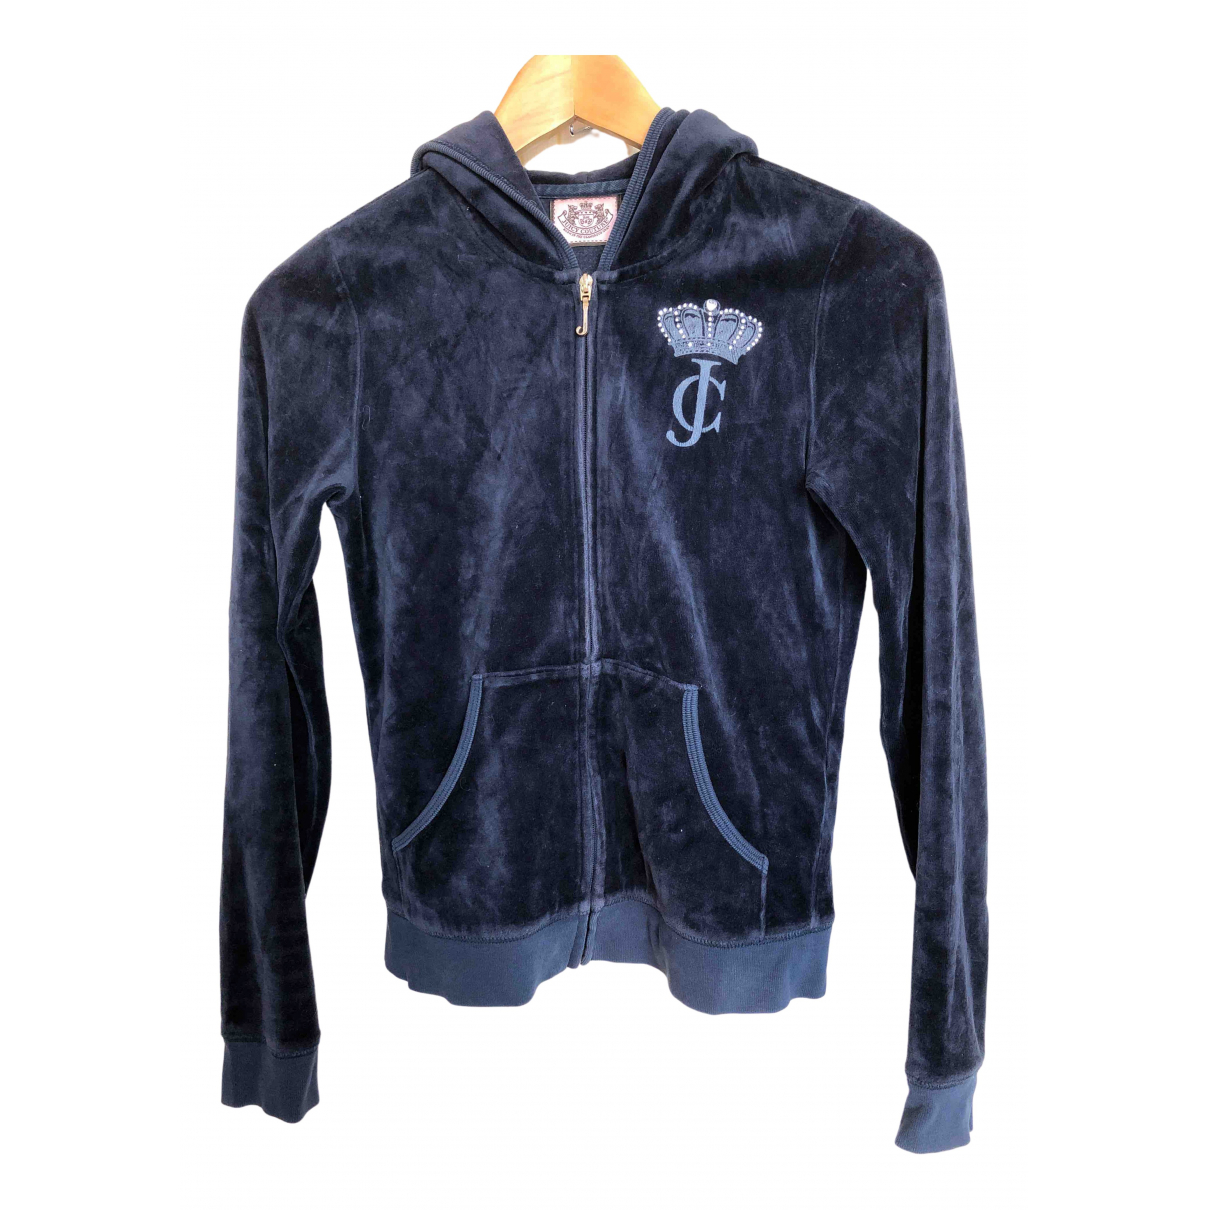 Juicy Couture \N Blue Cotton jacket for Women S International